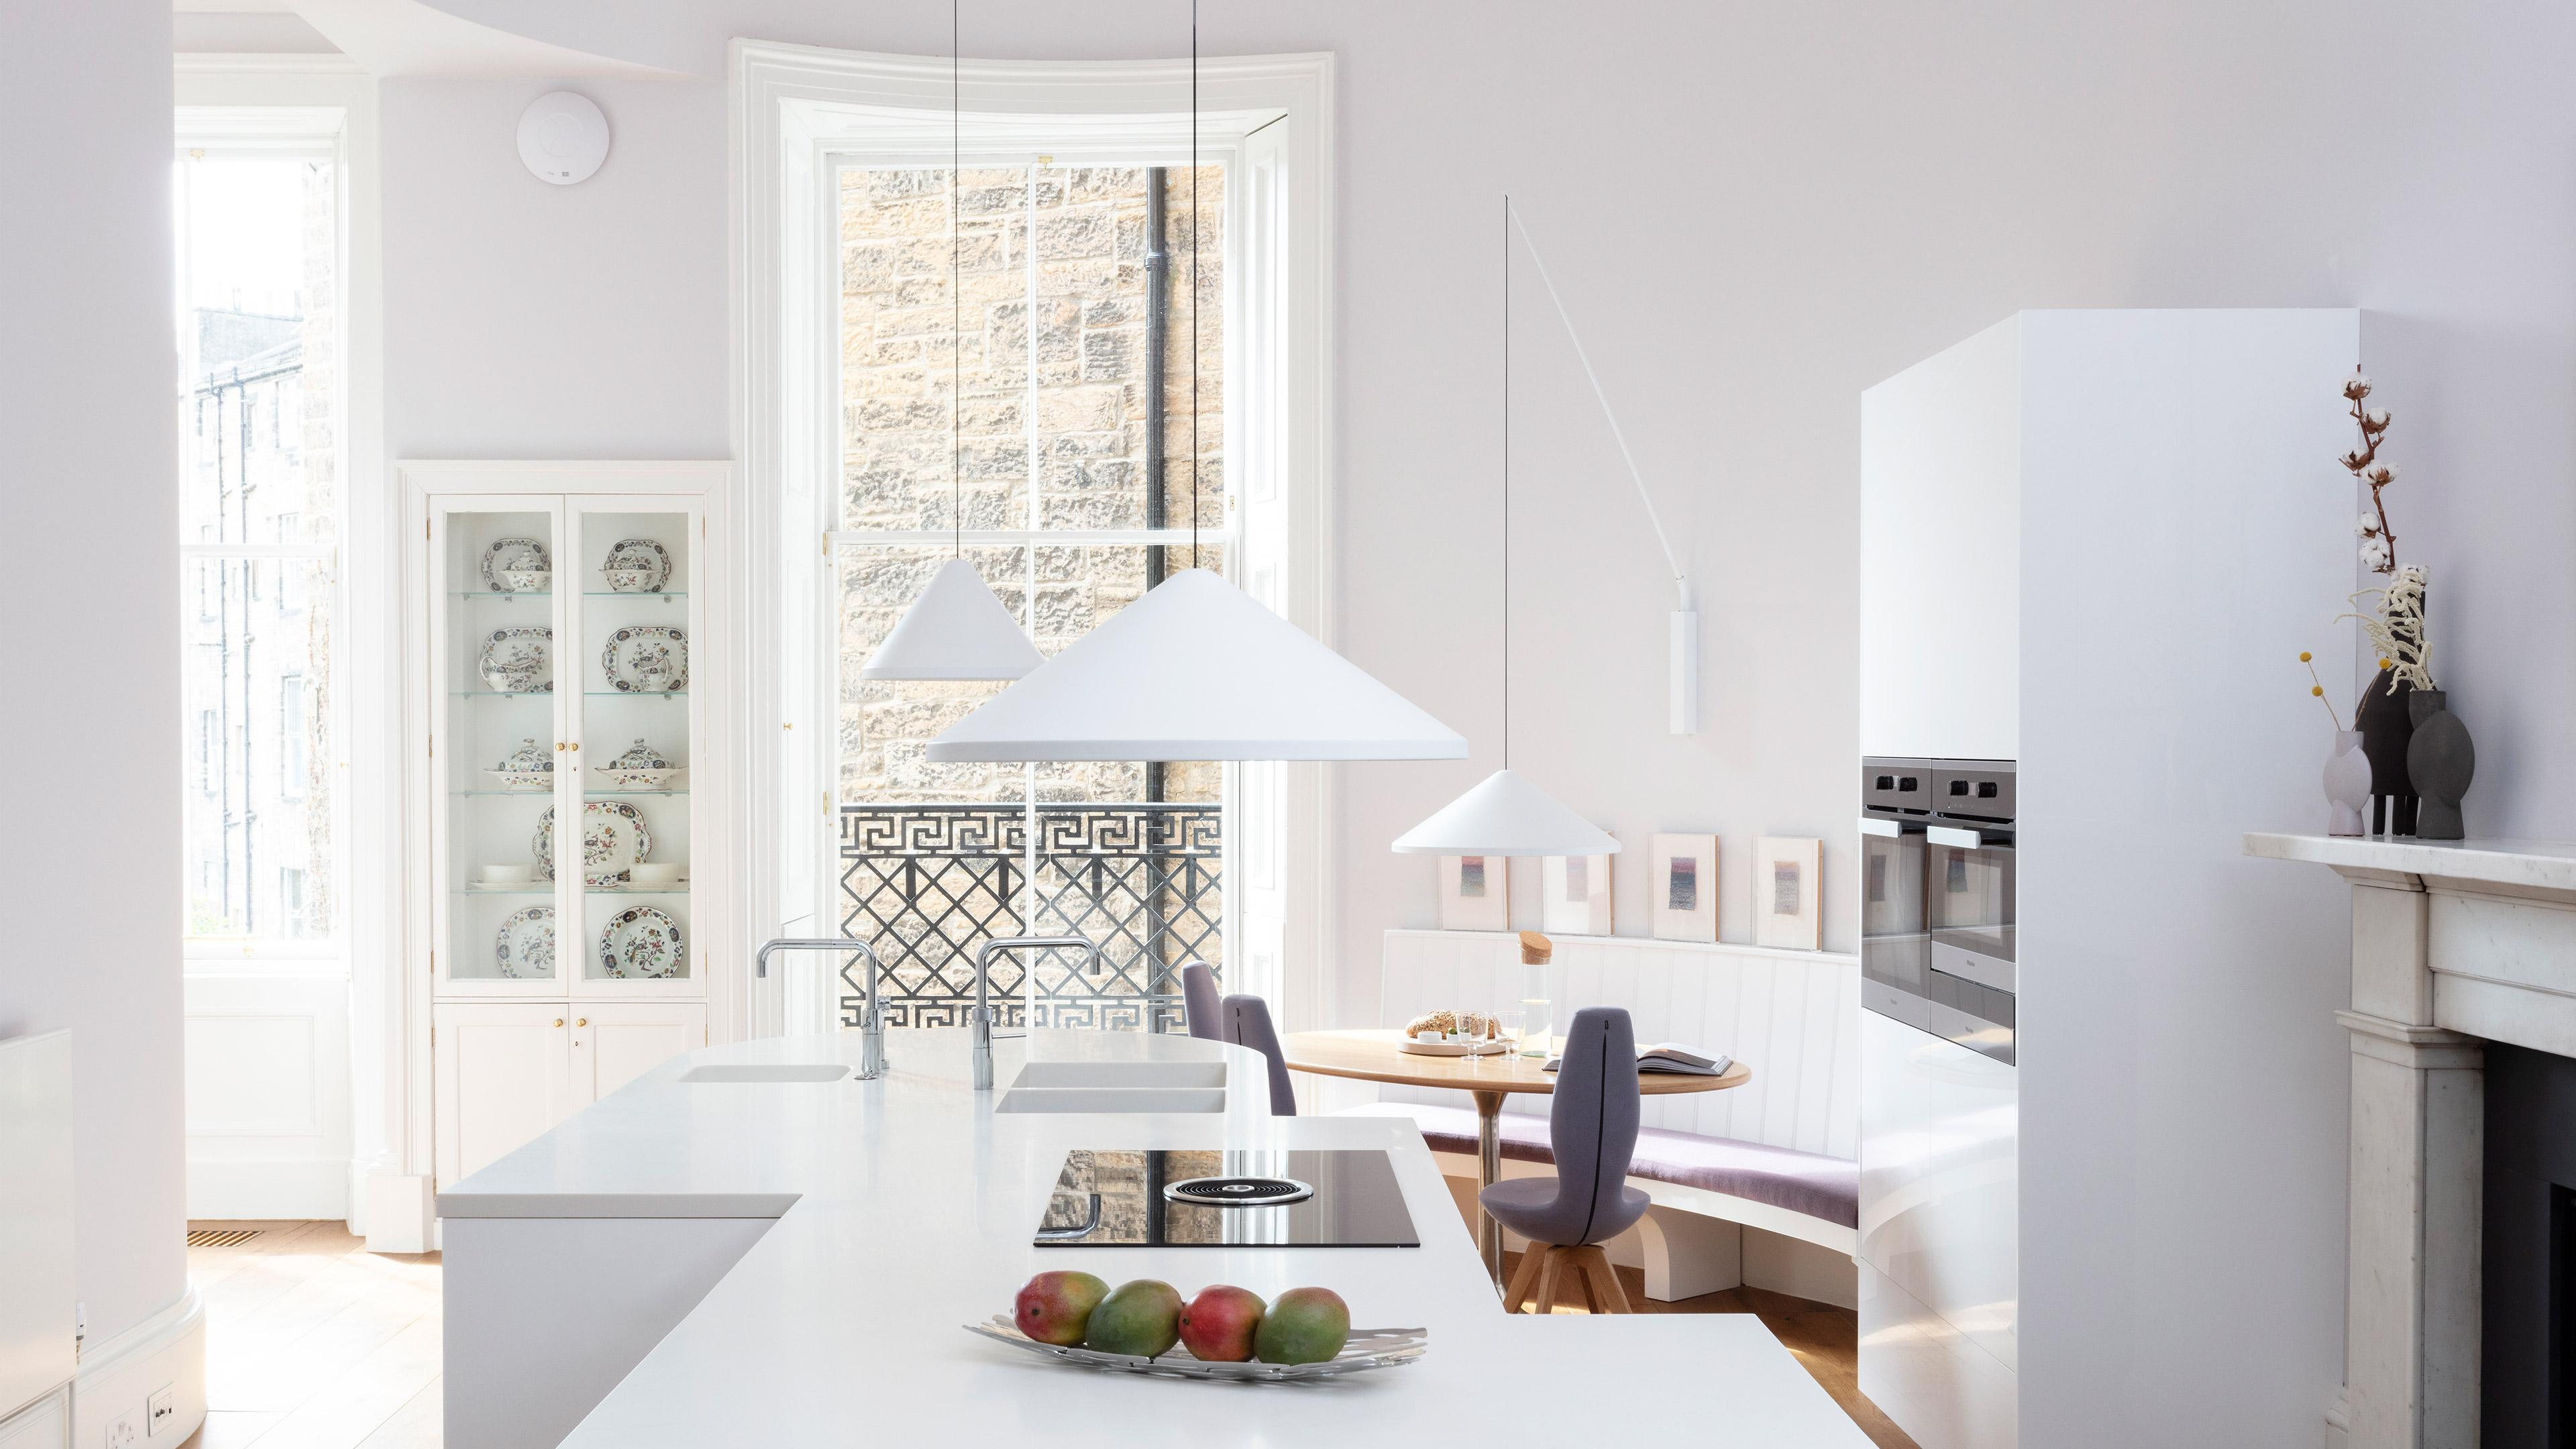 FROM A SIMPLE OFFICE TO A STYLISH COOKING PARADISE